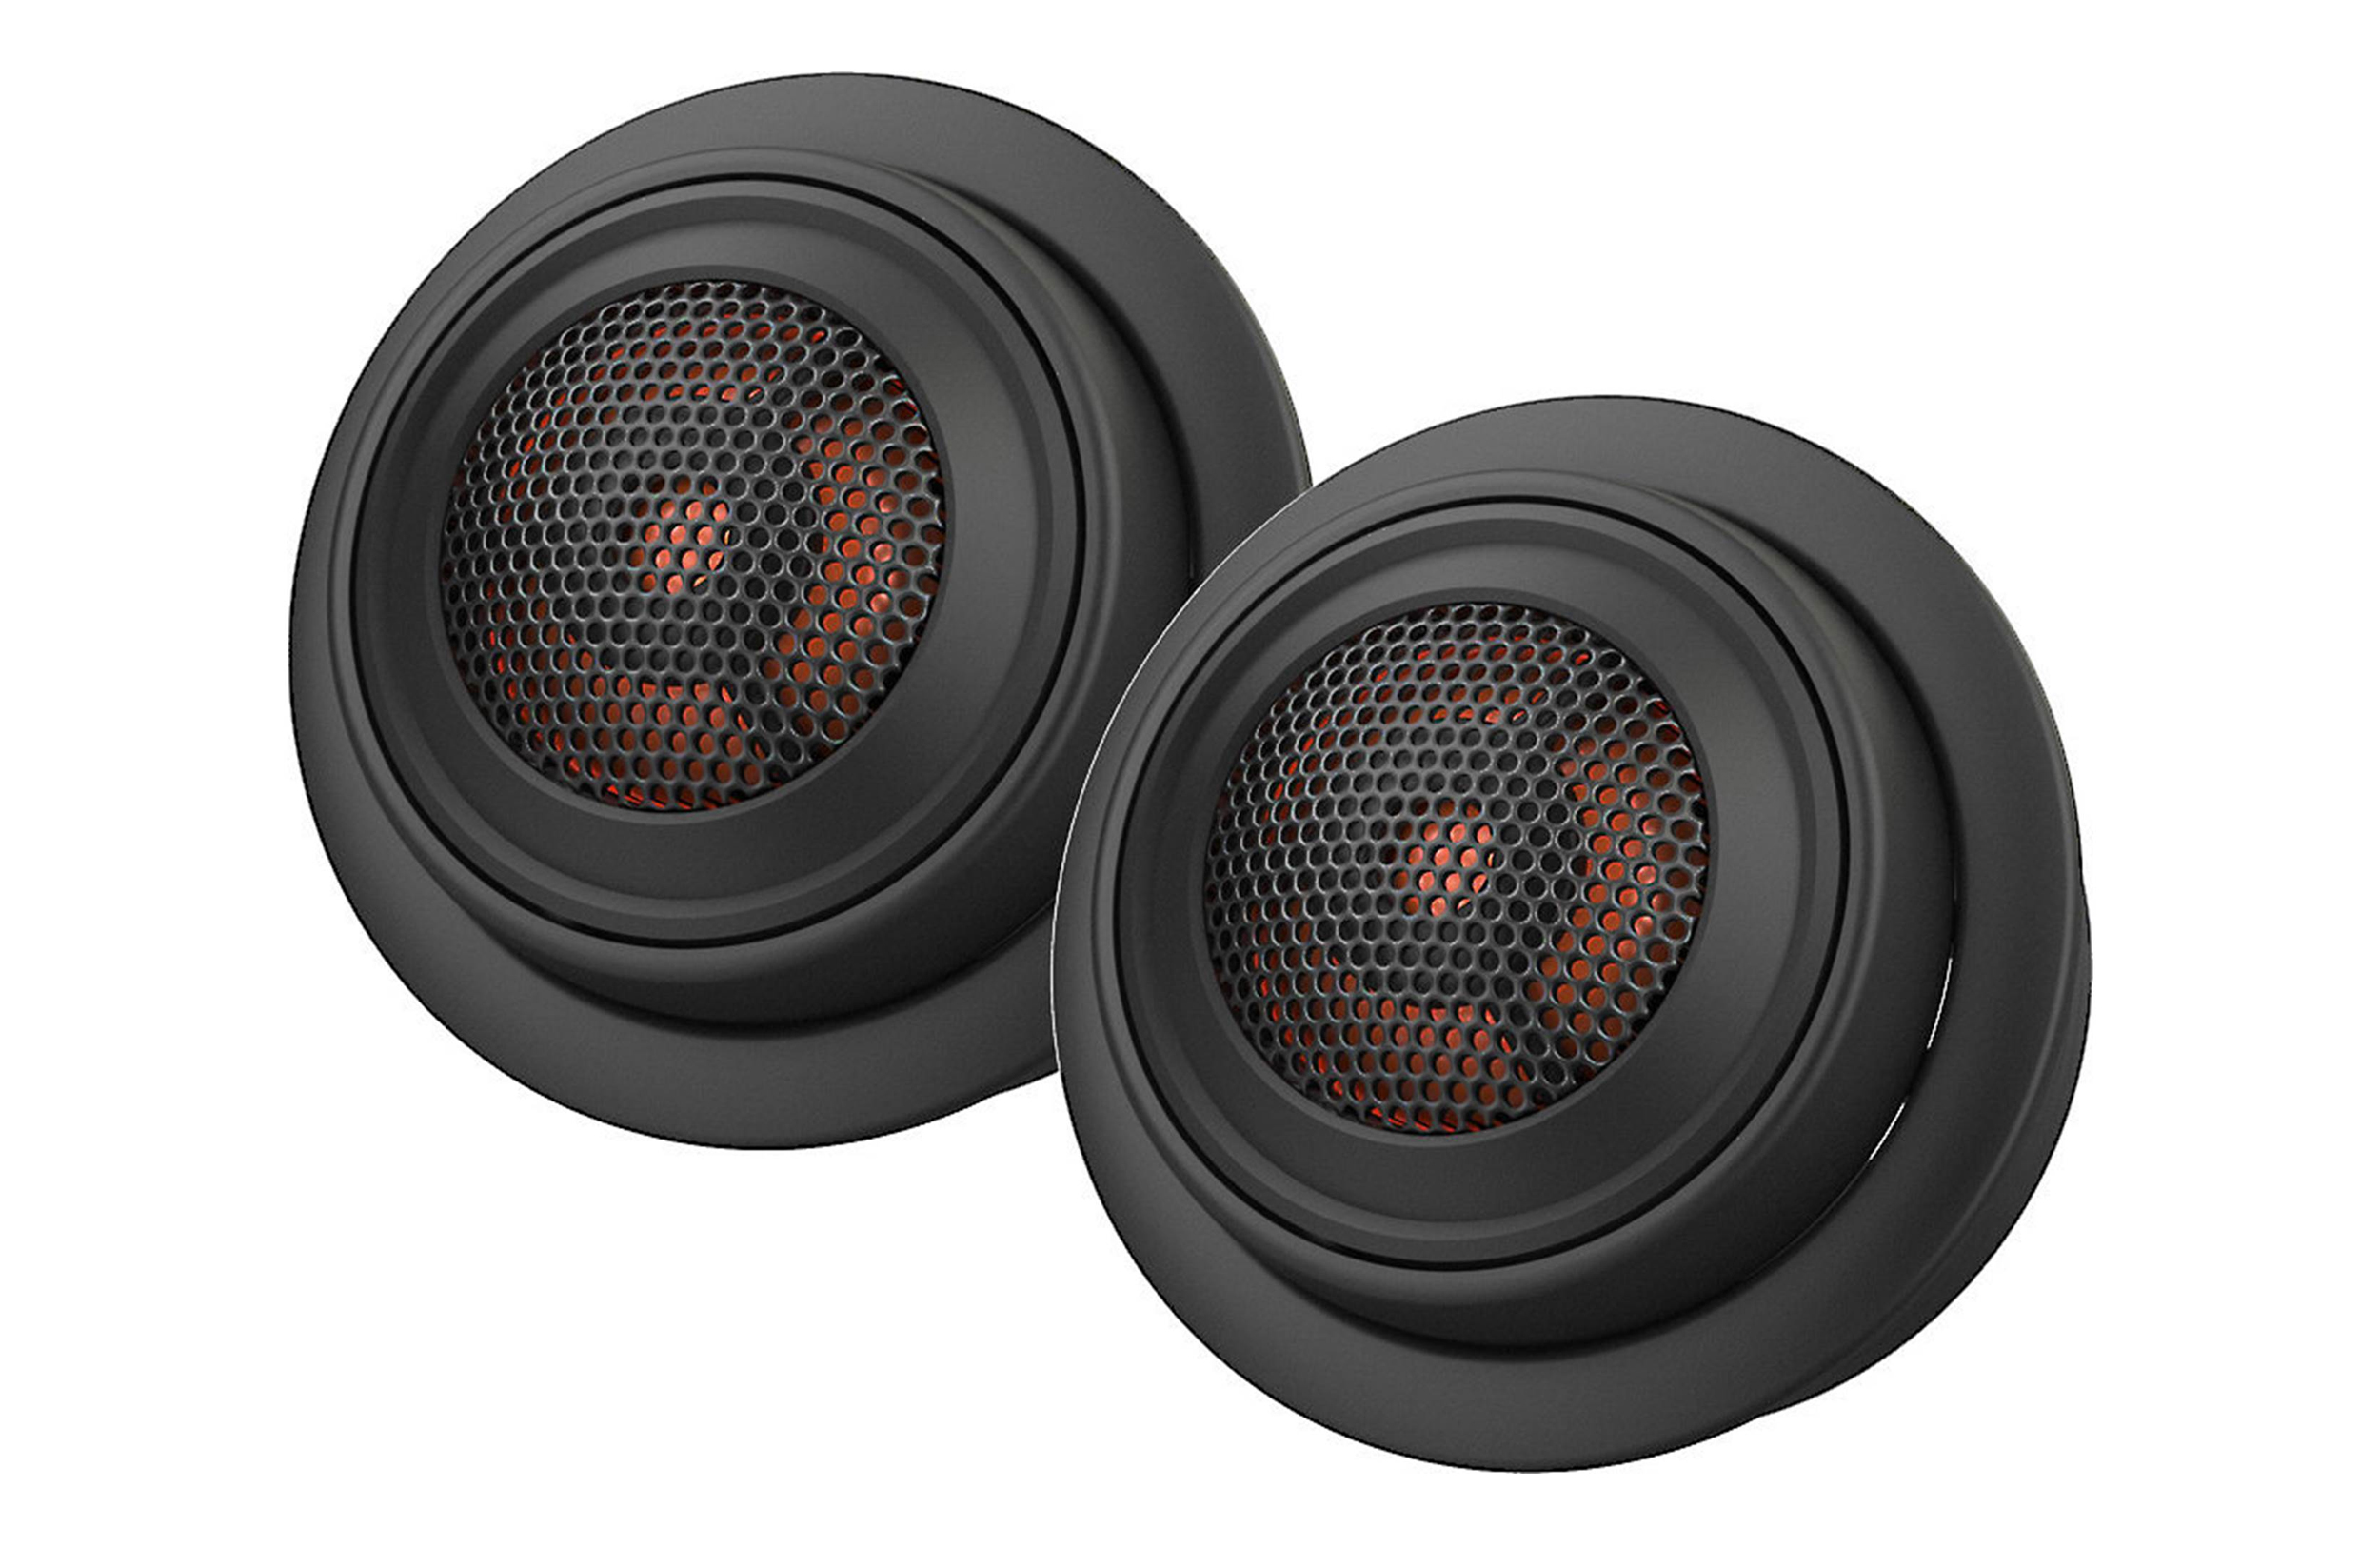 PEI balanced dome tweeters